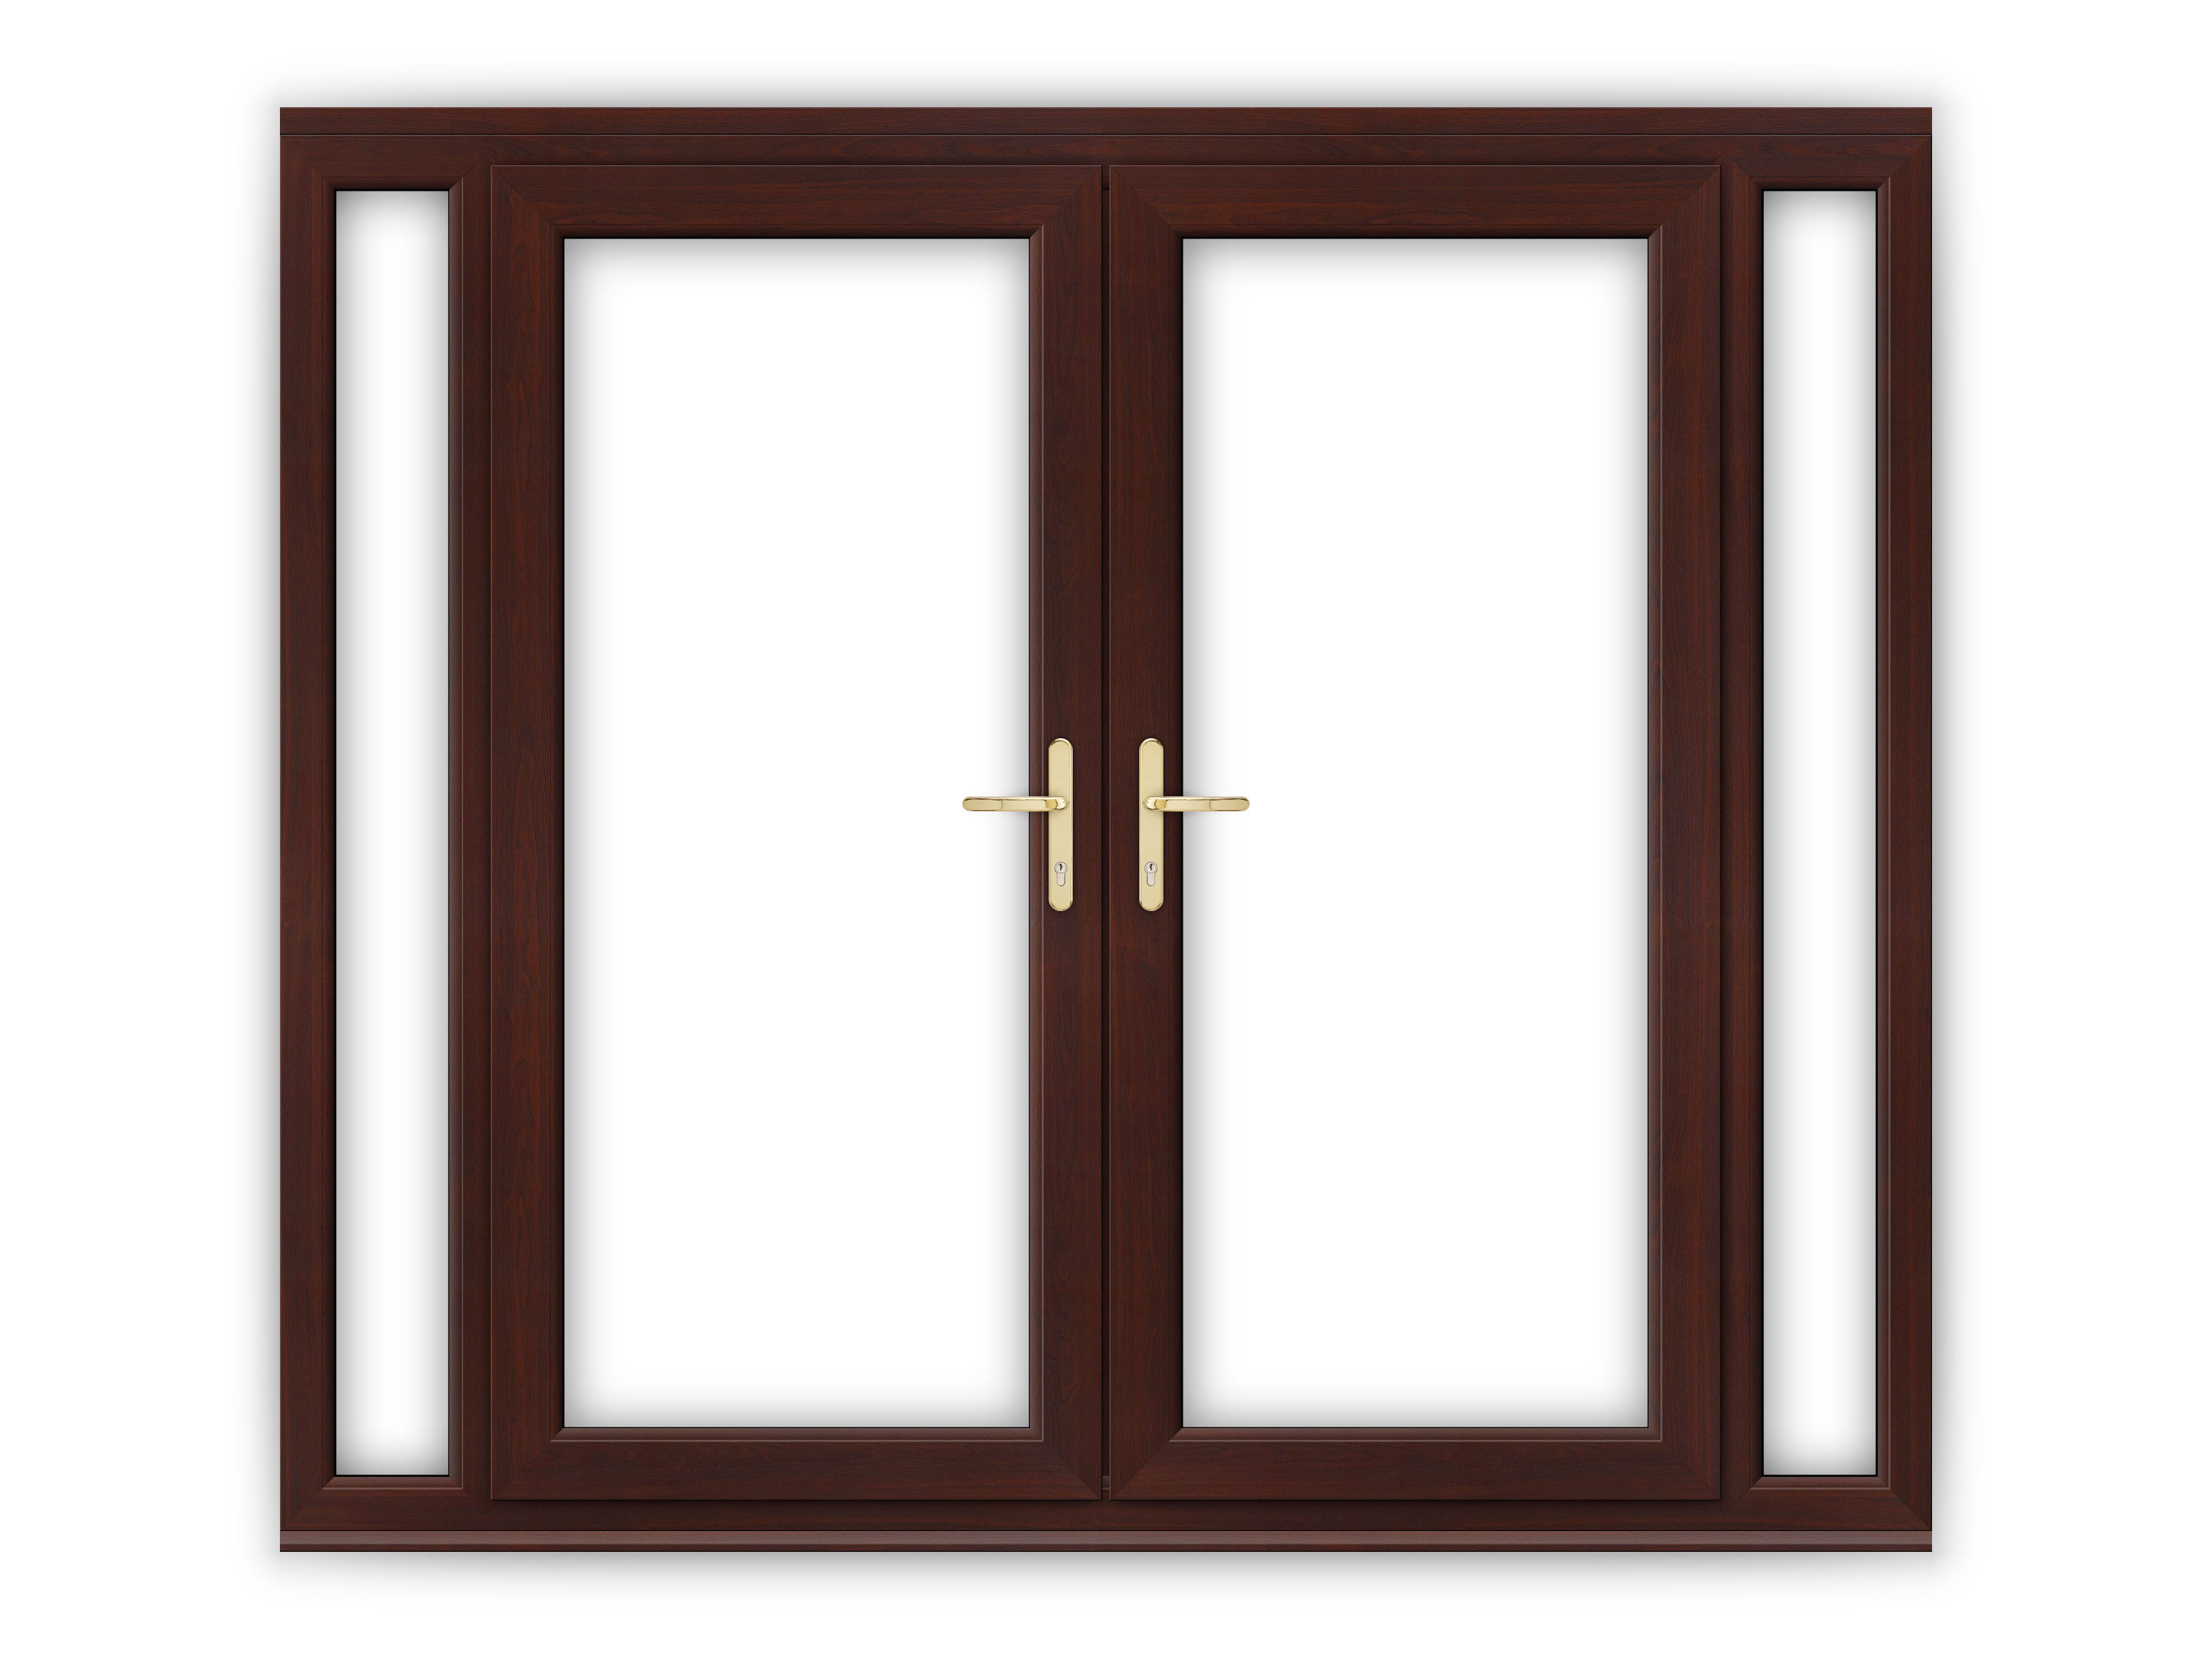 6ft rosewood upvc french doors with narrow side panels for 6 ft wide french doors